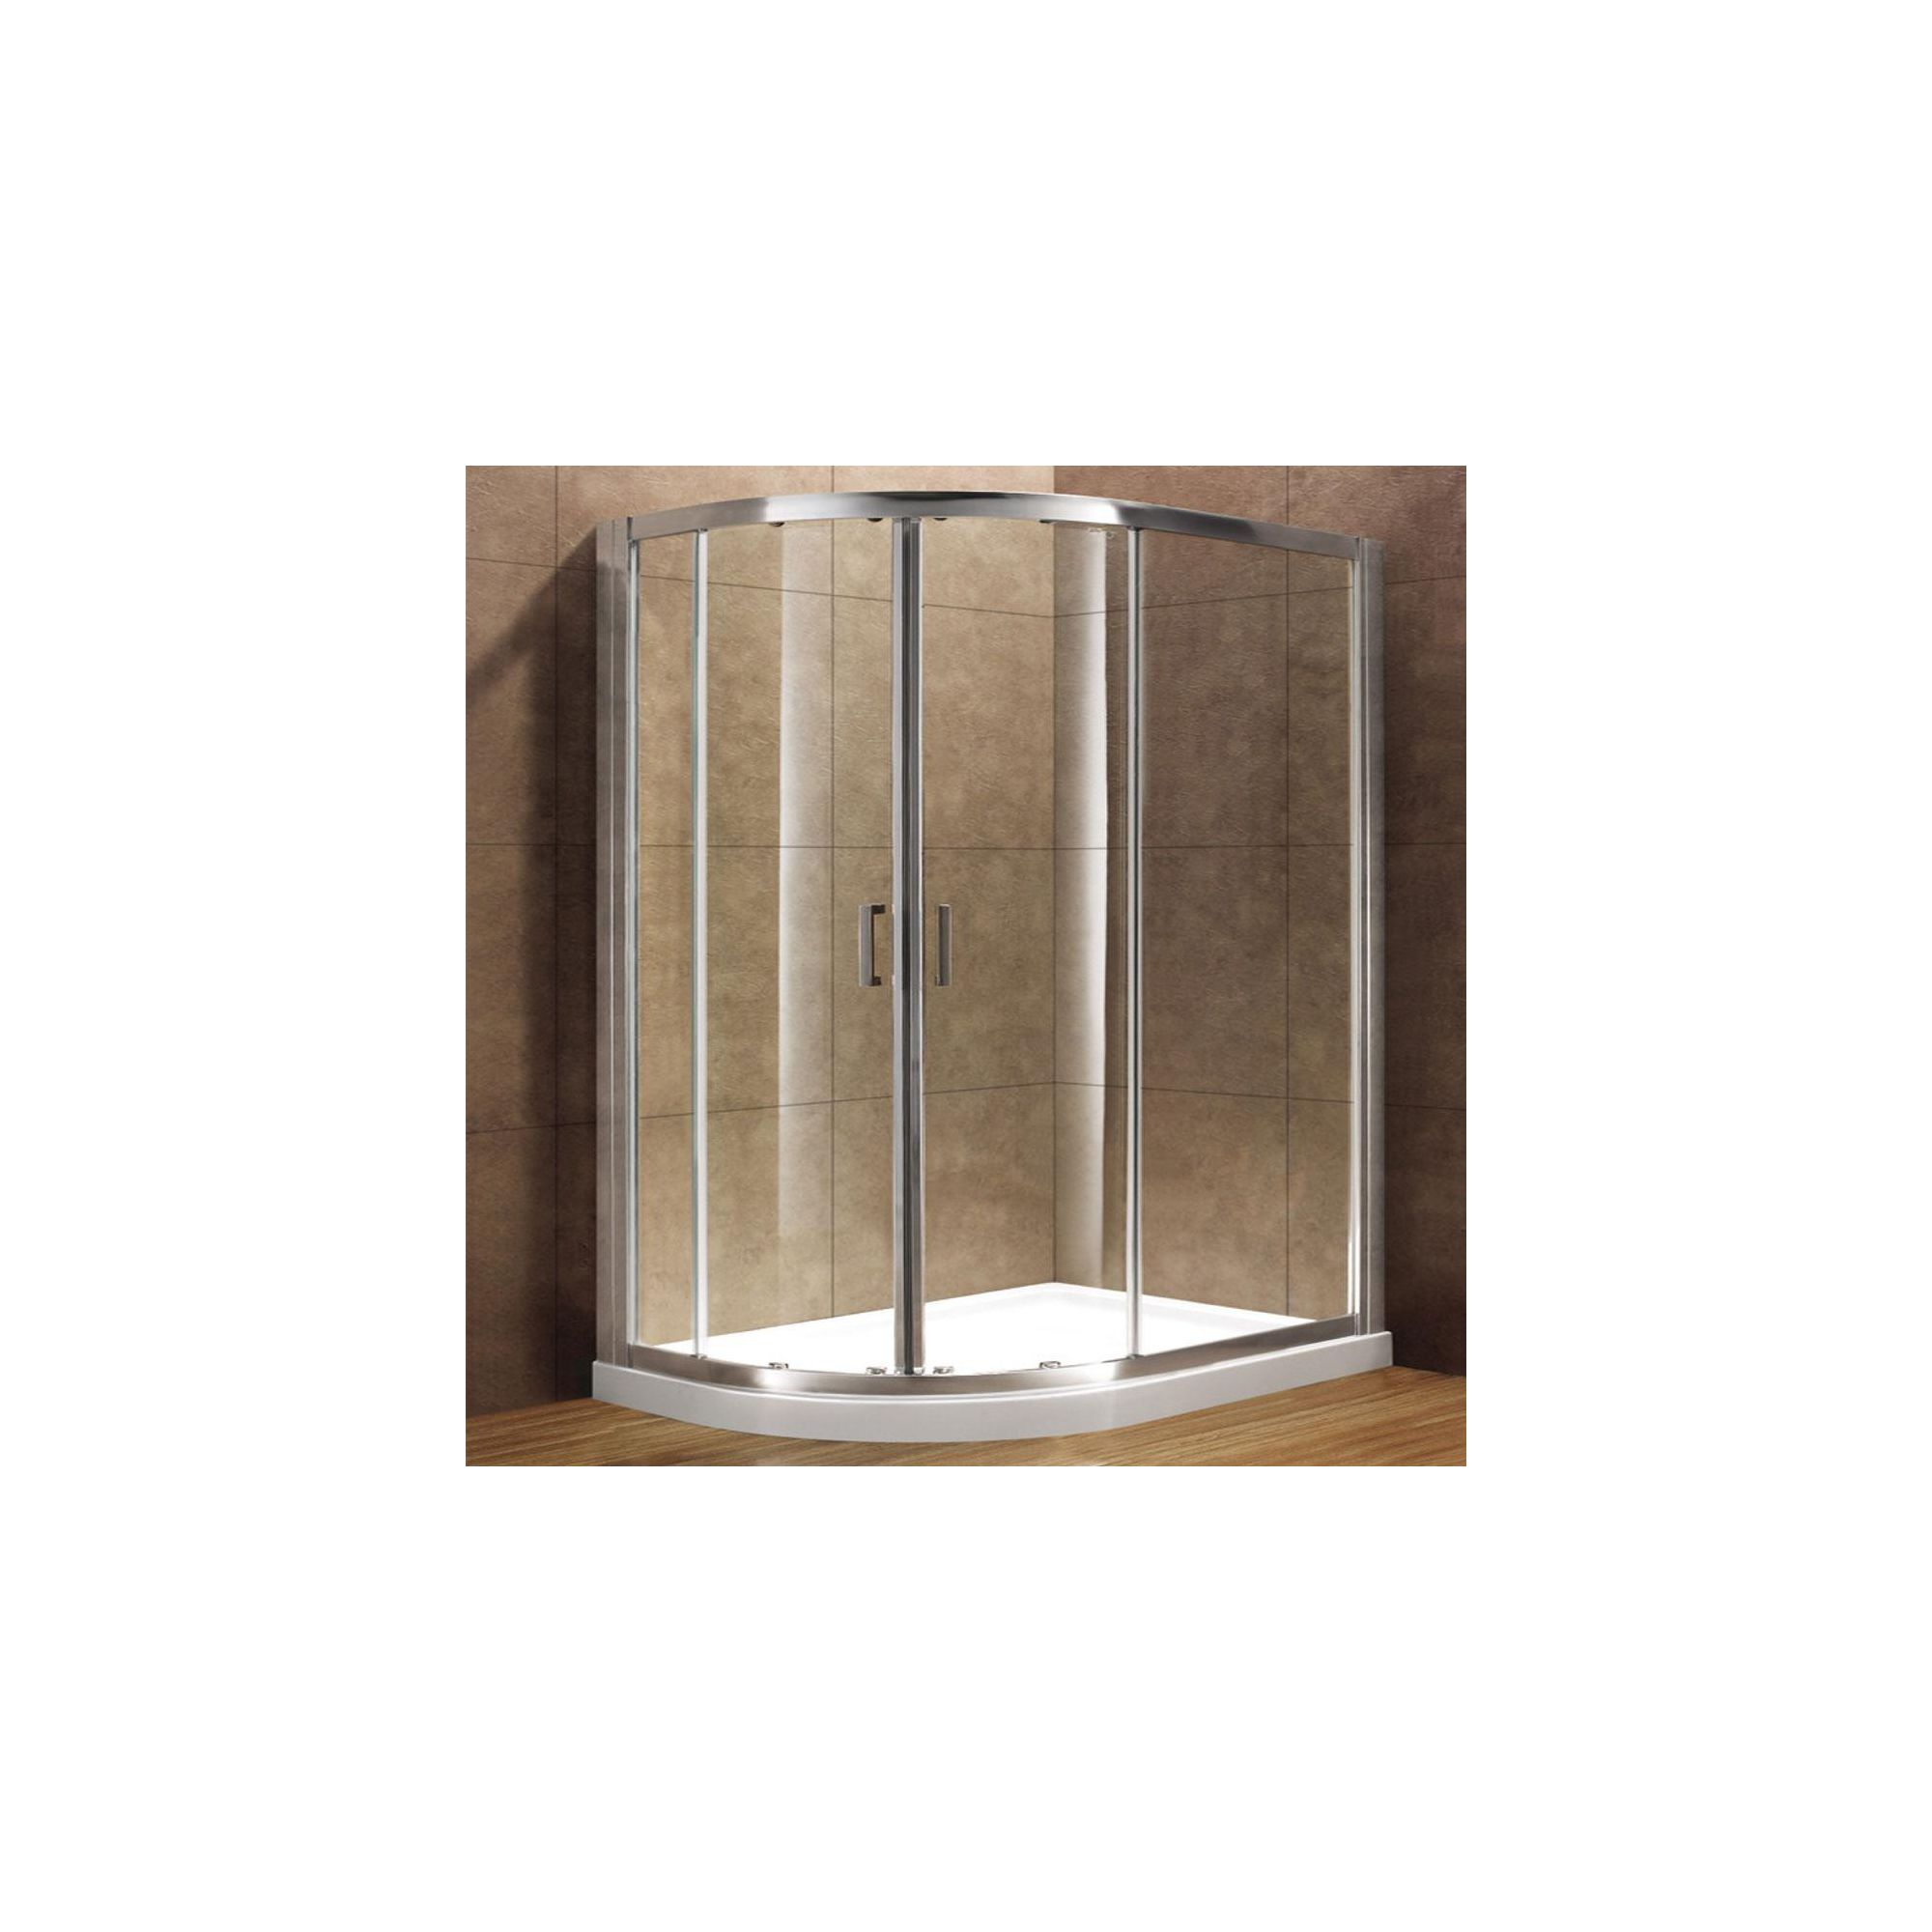 Duchy Premium Double Offset Quadrant Shower Door, 1200mm x 800mm, 8mm Glass at Tesco Direct